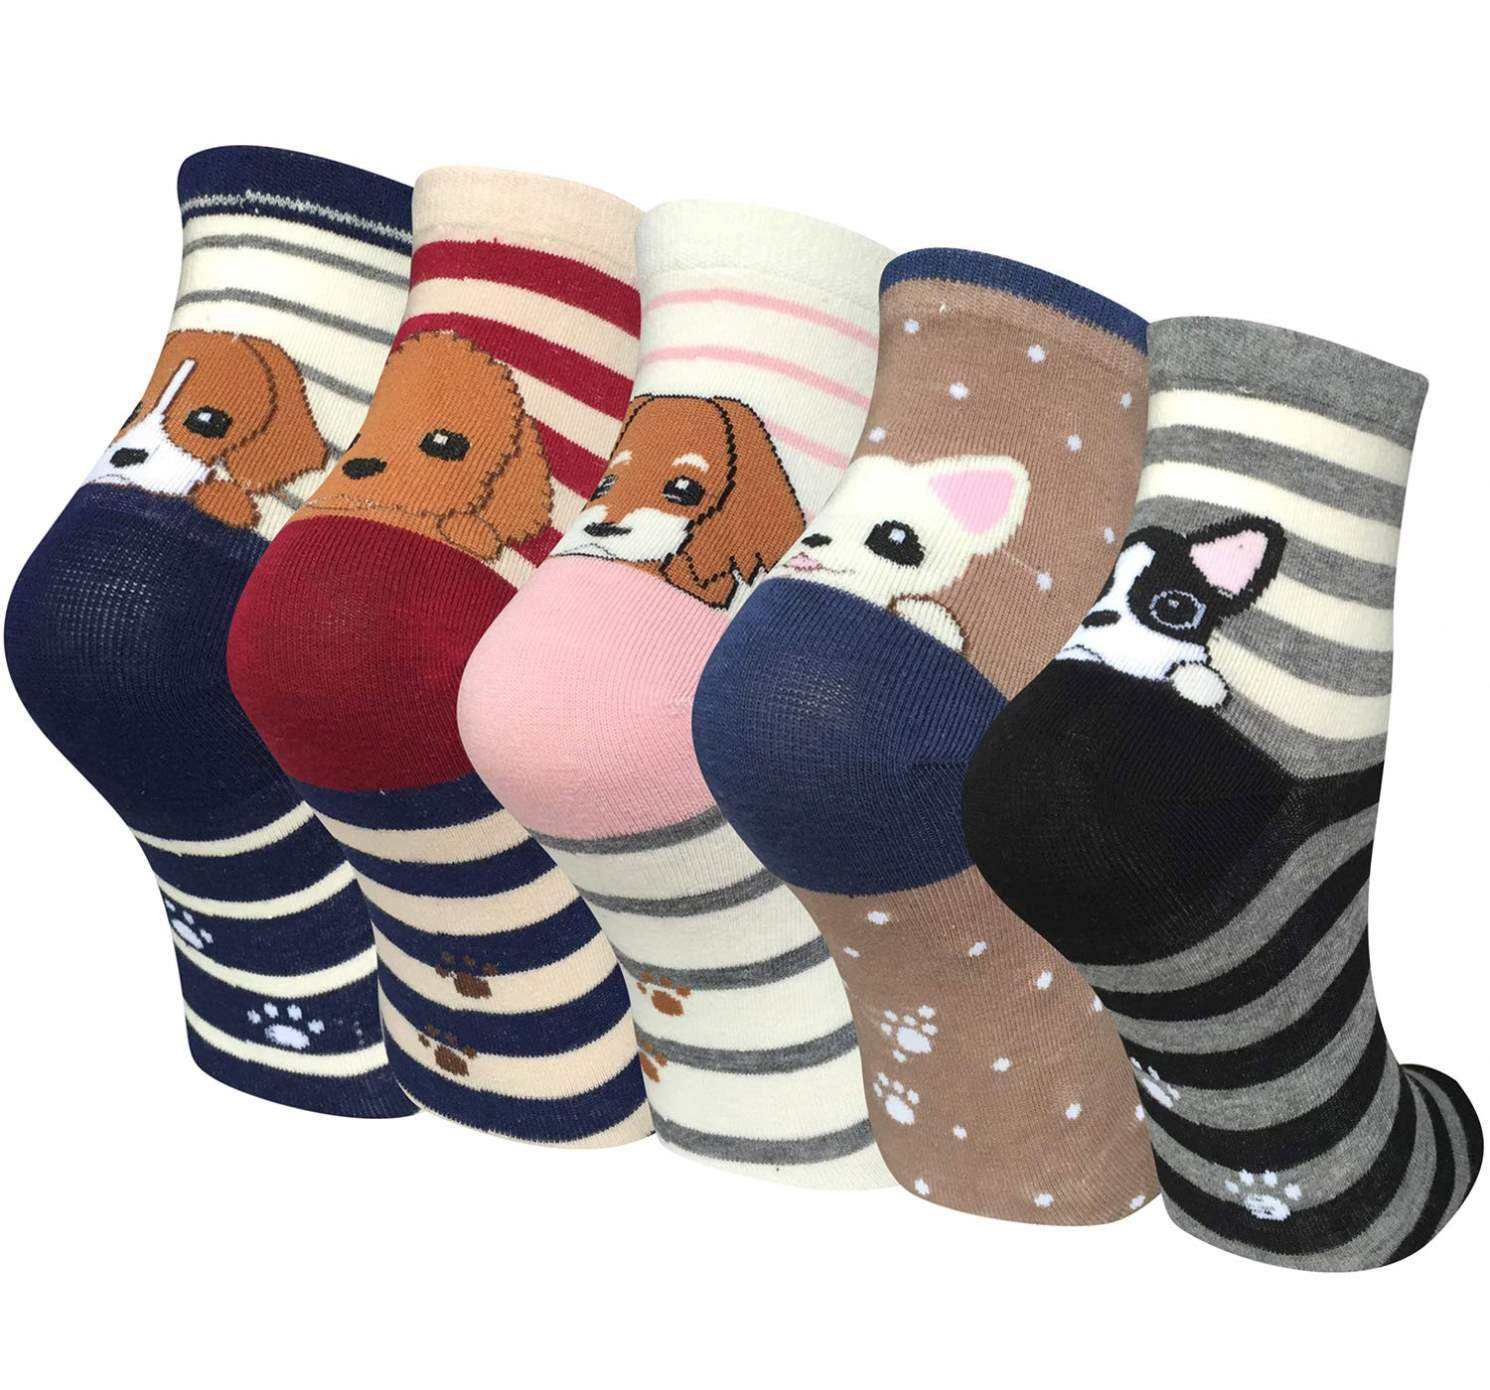 2019 High quality fashion 100 cotton custom cute boy tube cycling kids socks